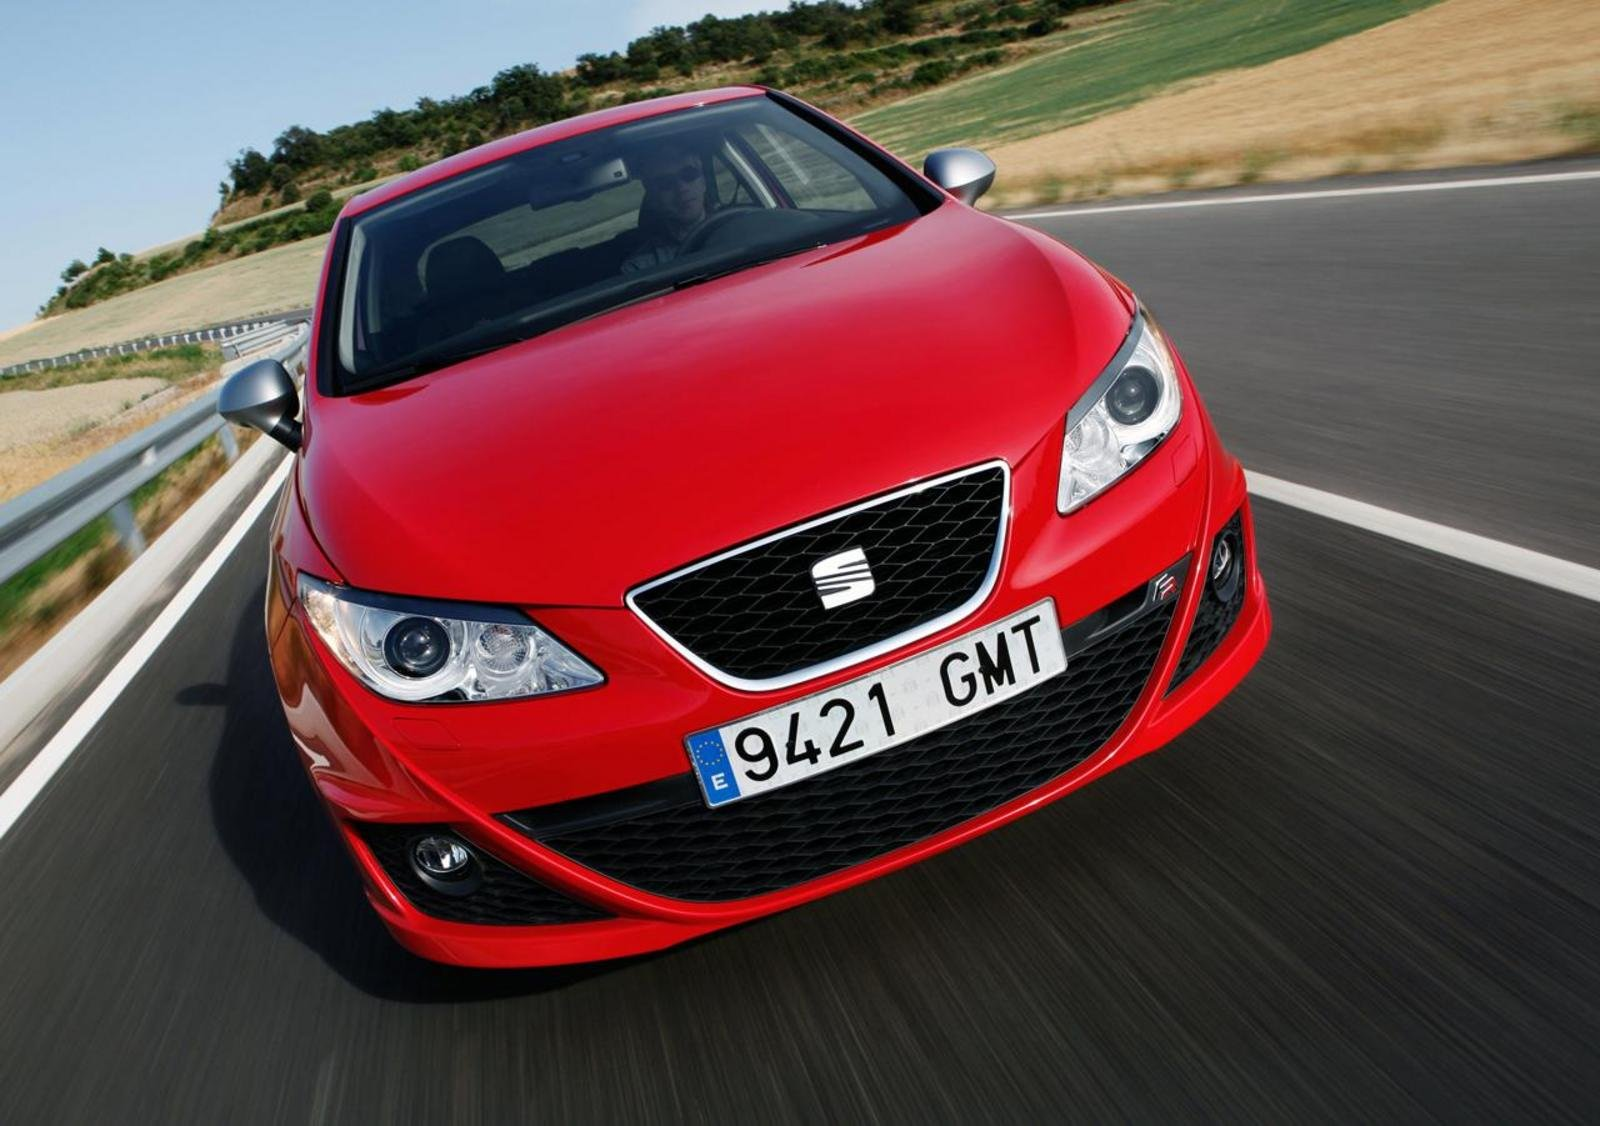 2010 seat ibiza fr tdi review top speed. Black Bedroom Furniture Sets. Home Design Ideas